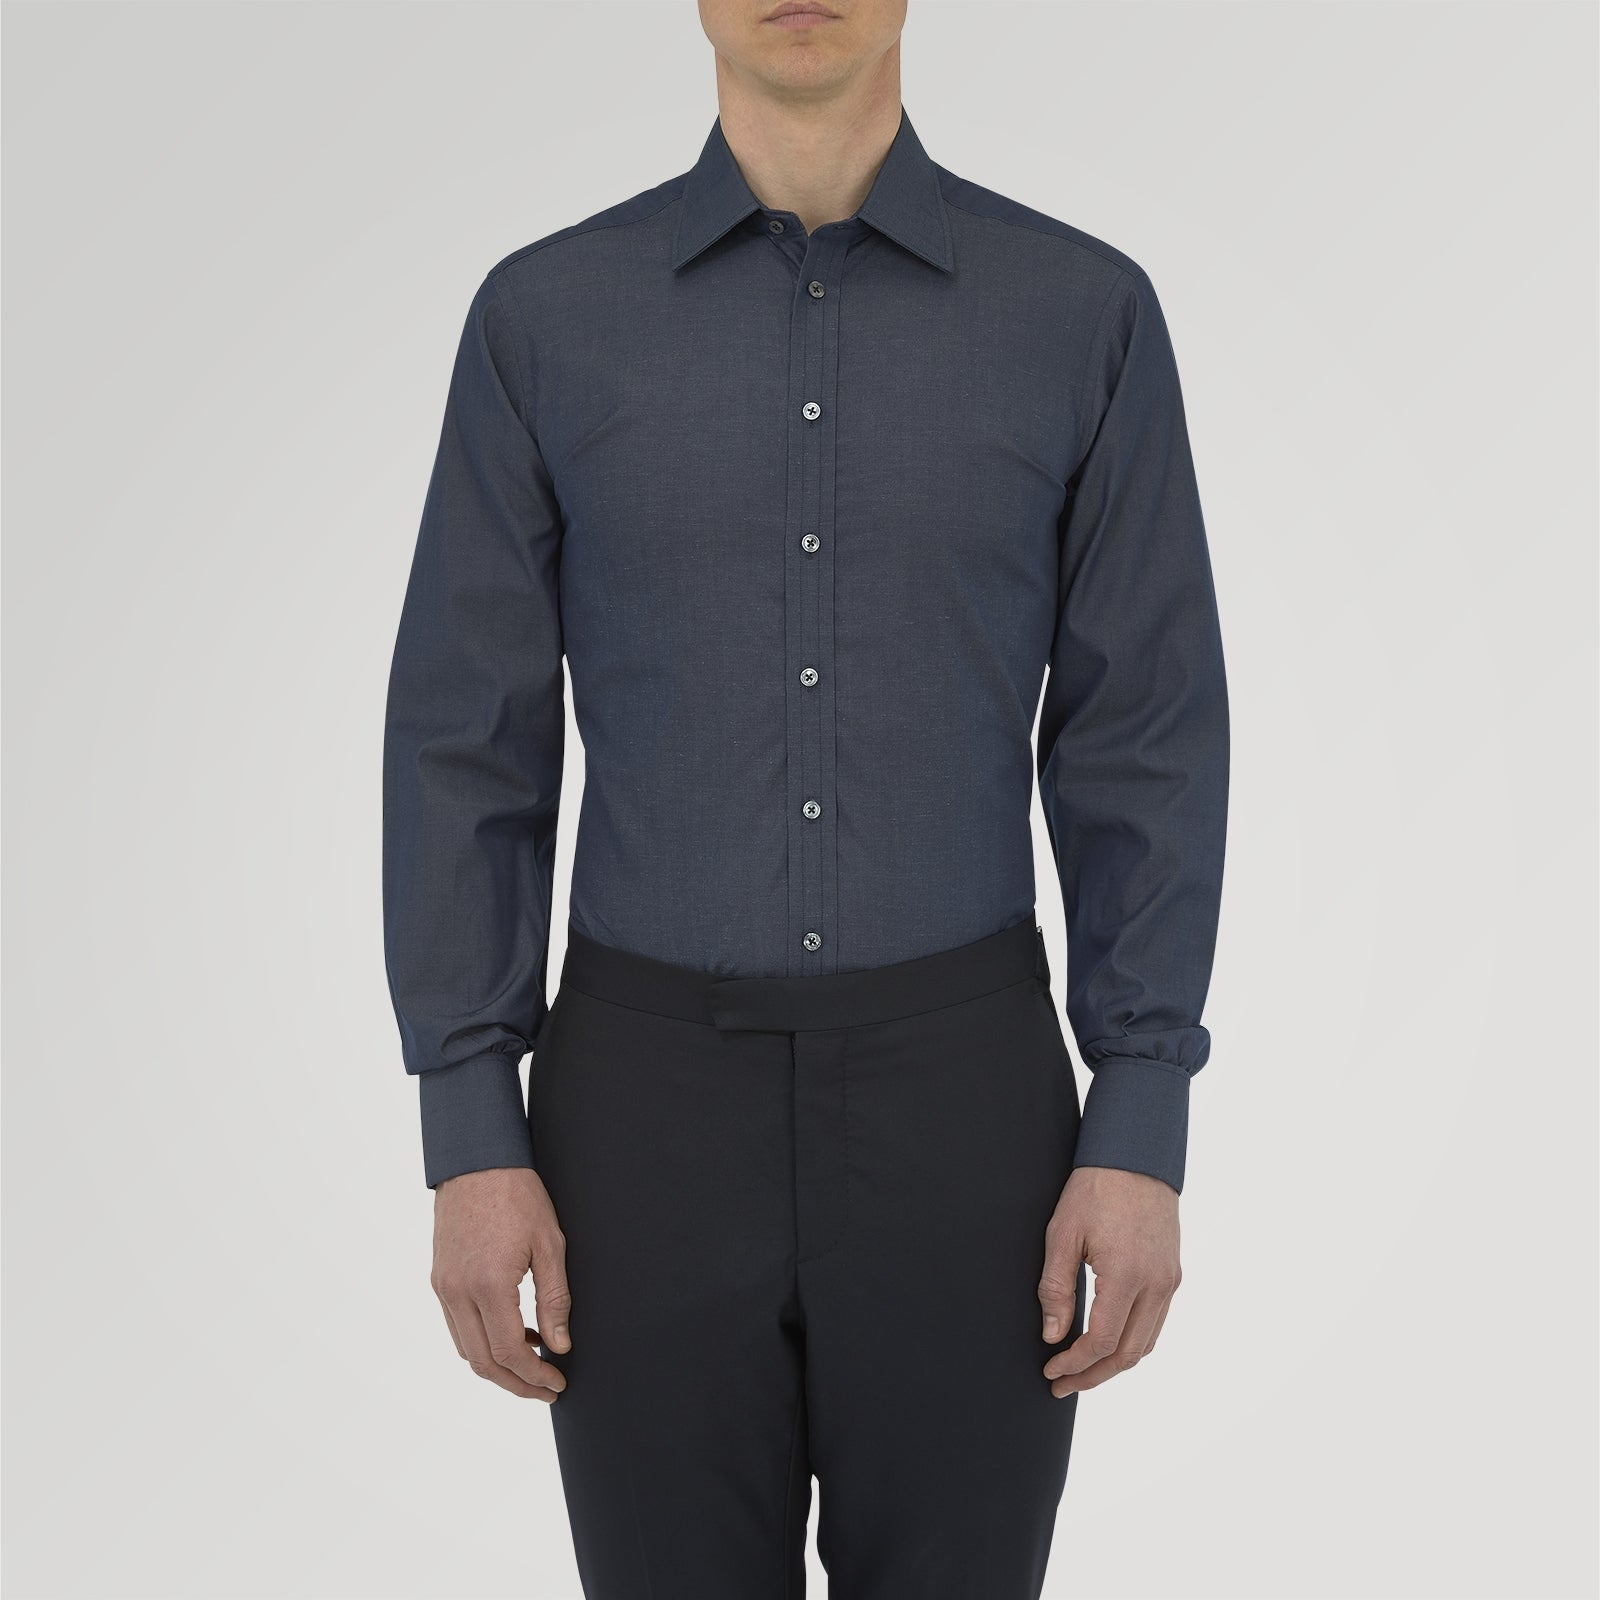 Dark Blue Denim-Cashmere Shirt with T&A Collar and Double Cuffs